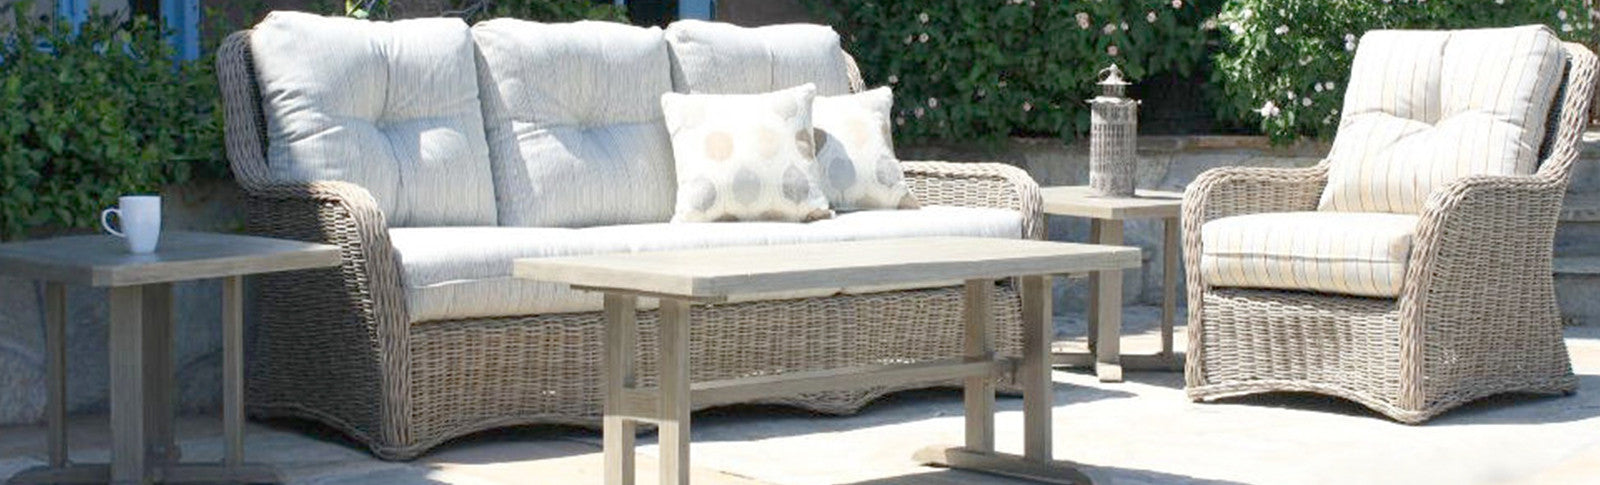 Patio Furniture Clearance Items